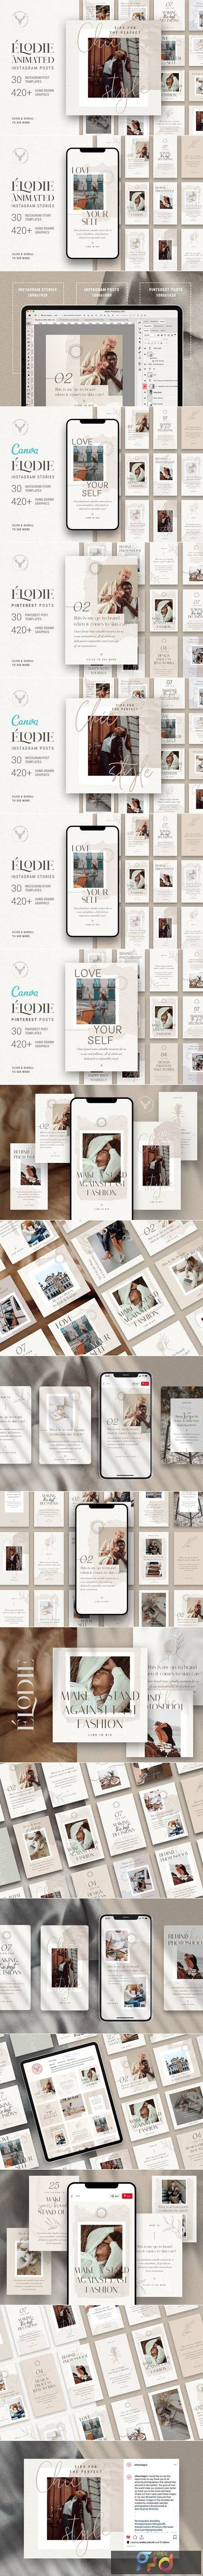 PS + Canva - Elodie Social Media Templates Pack 4888452 1